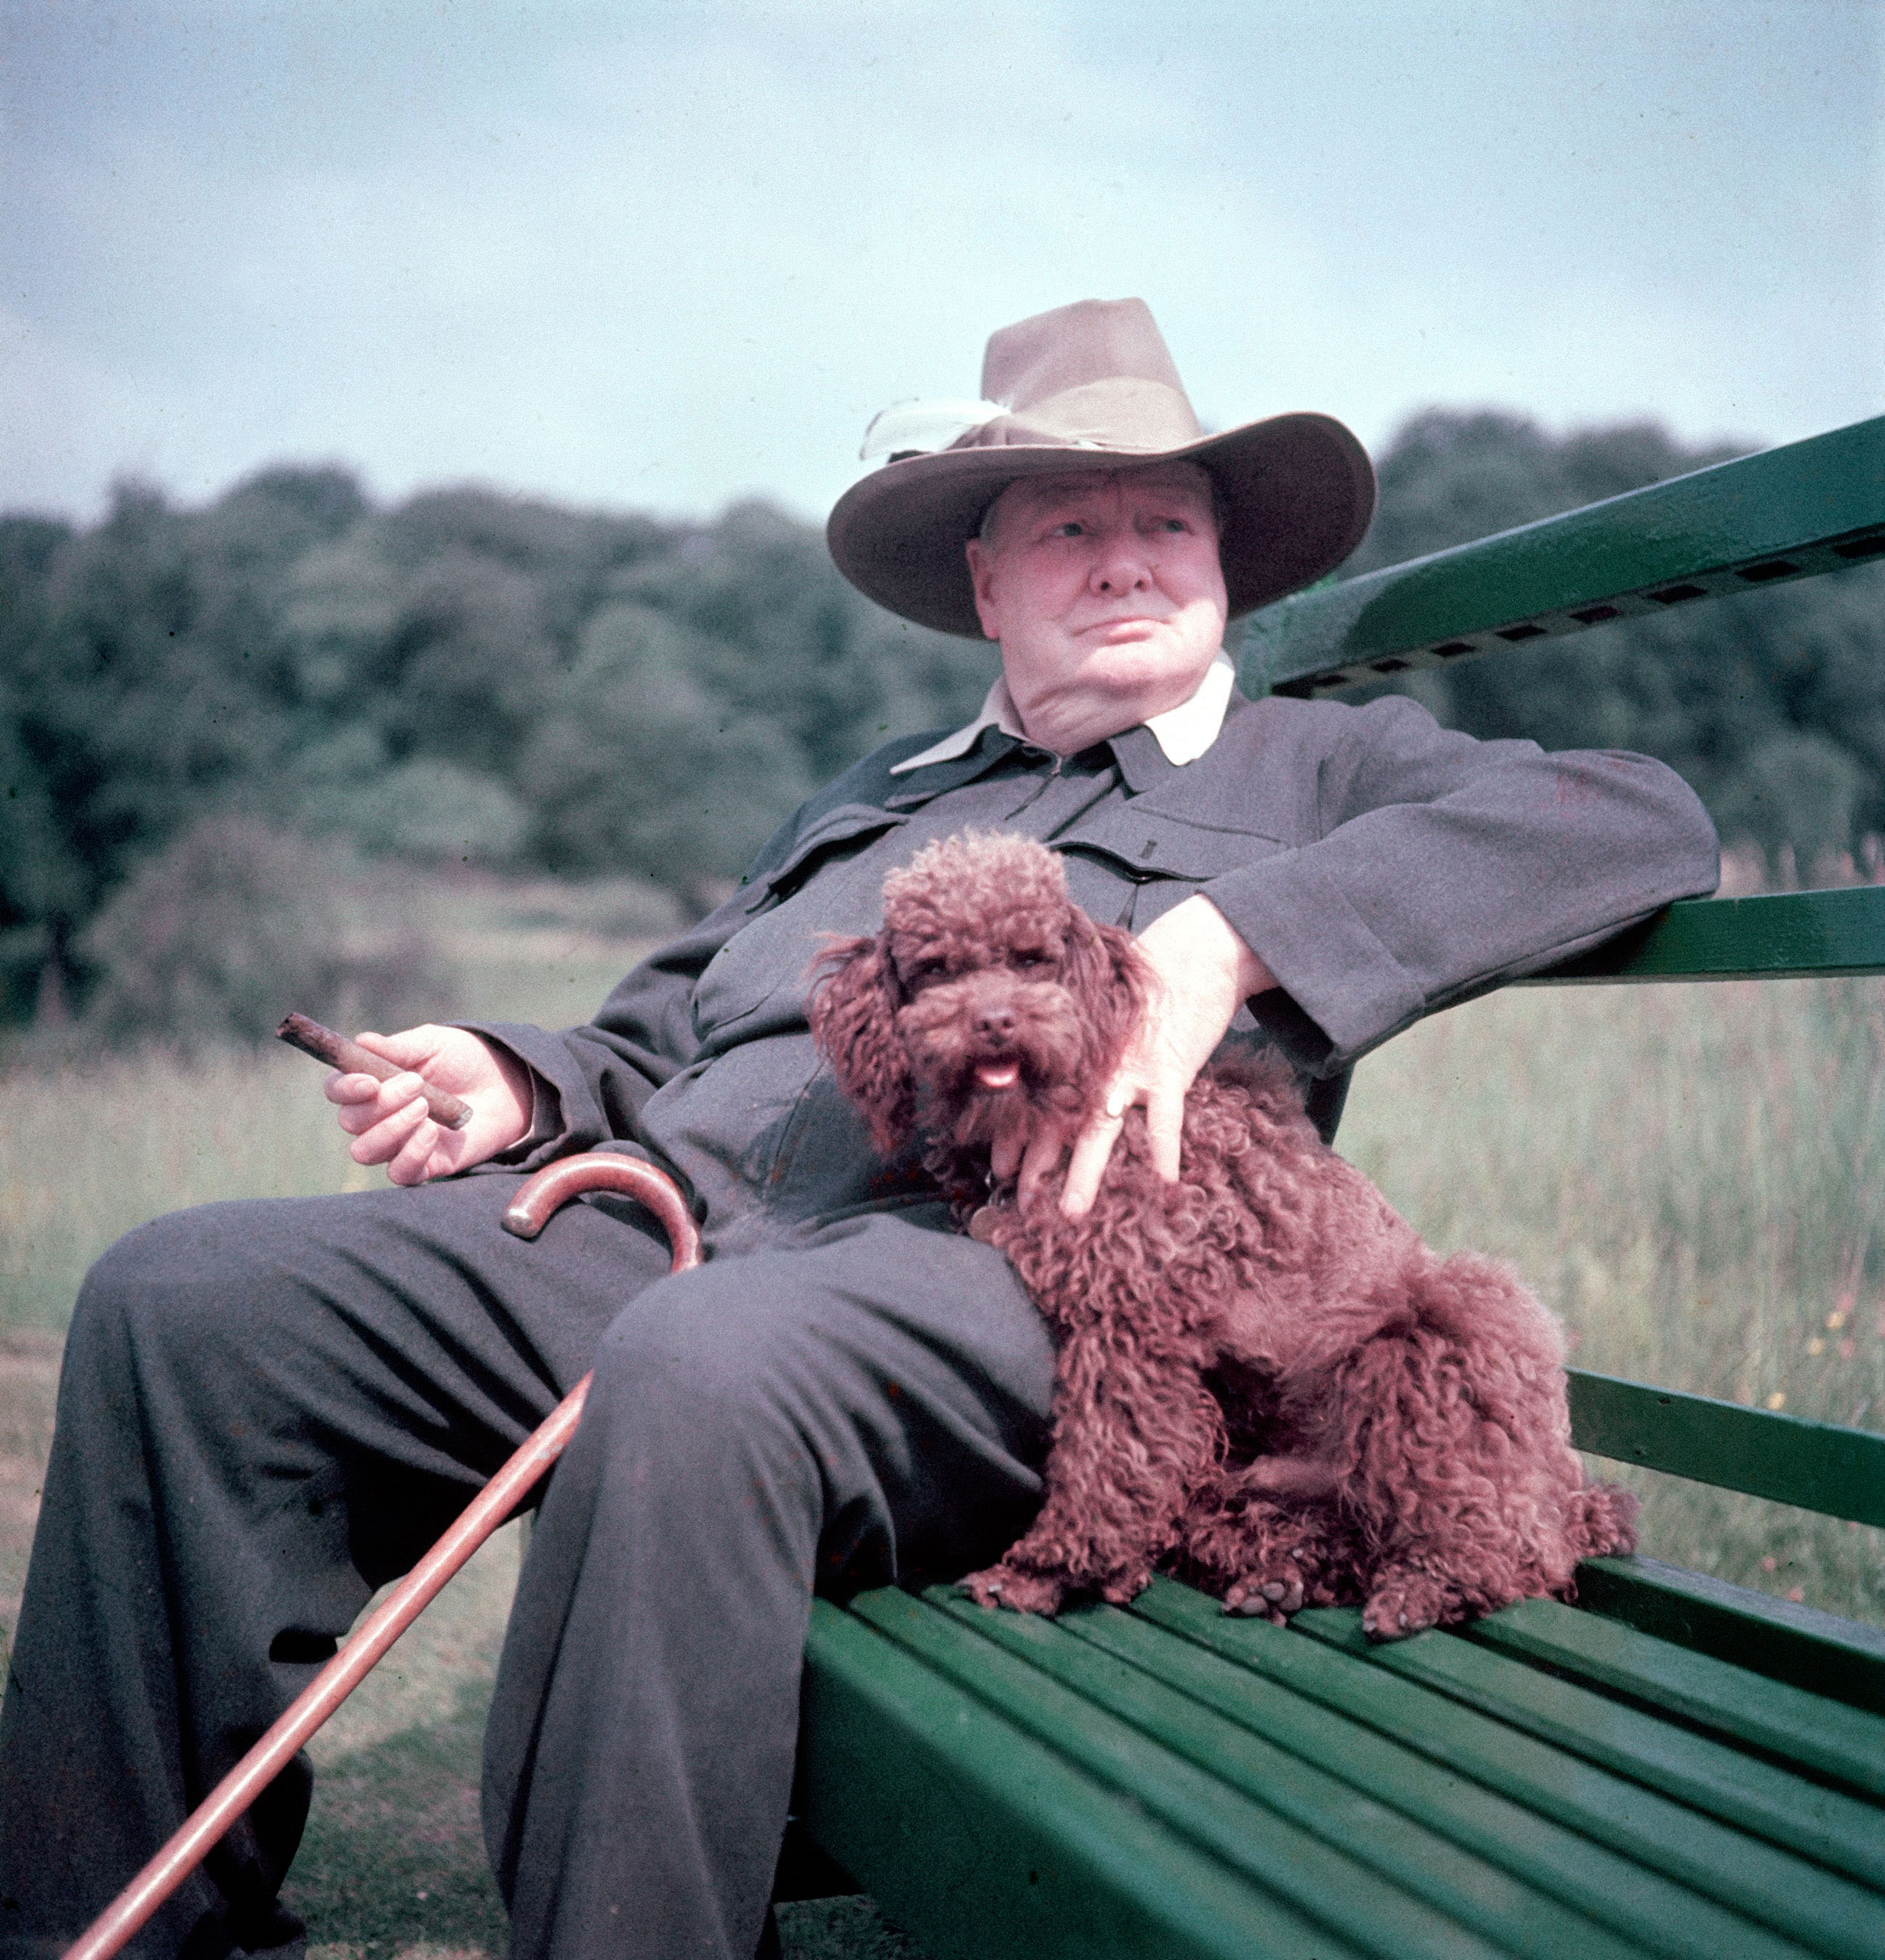 Winston Churchill and his dog, Rufus, at Chartwell in 1950.